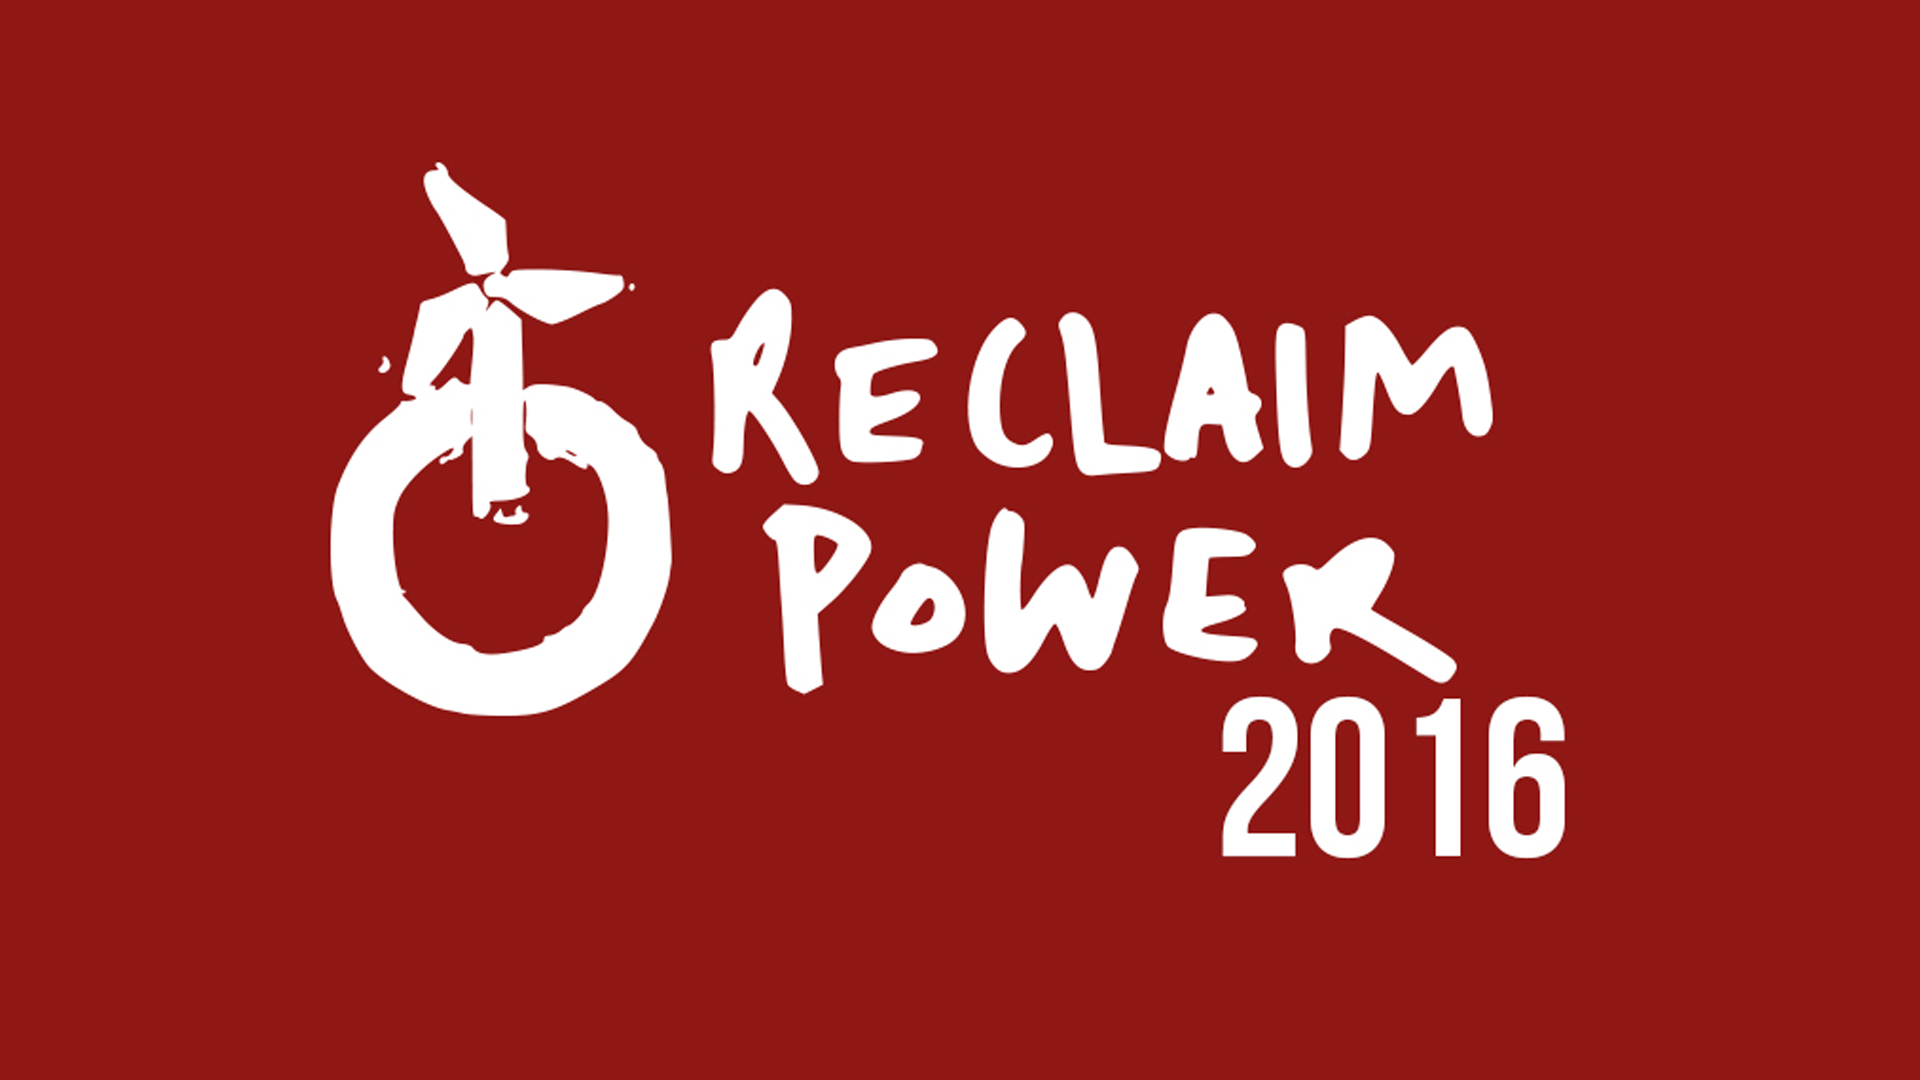 Reclaim Power 2016: A call for urgent action to put an end to dirty energy